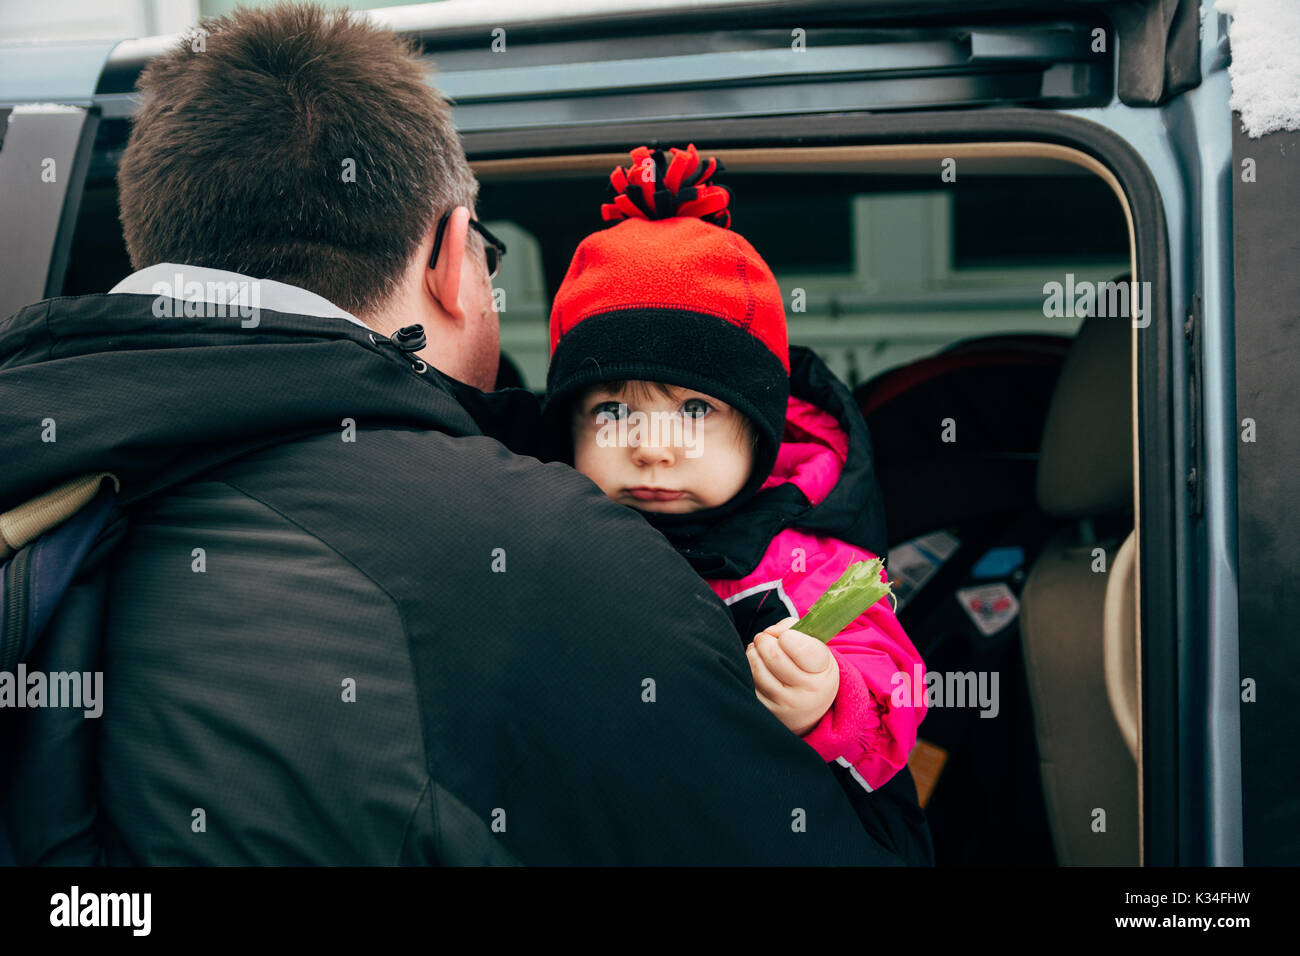 Dad carrying his daughter to the car during the winter. - Stock Image